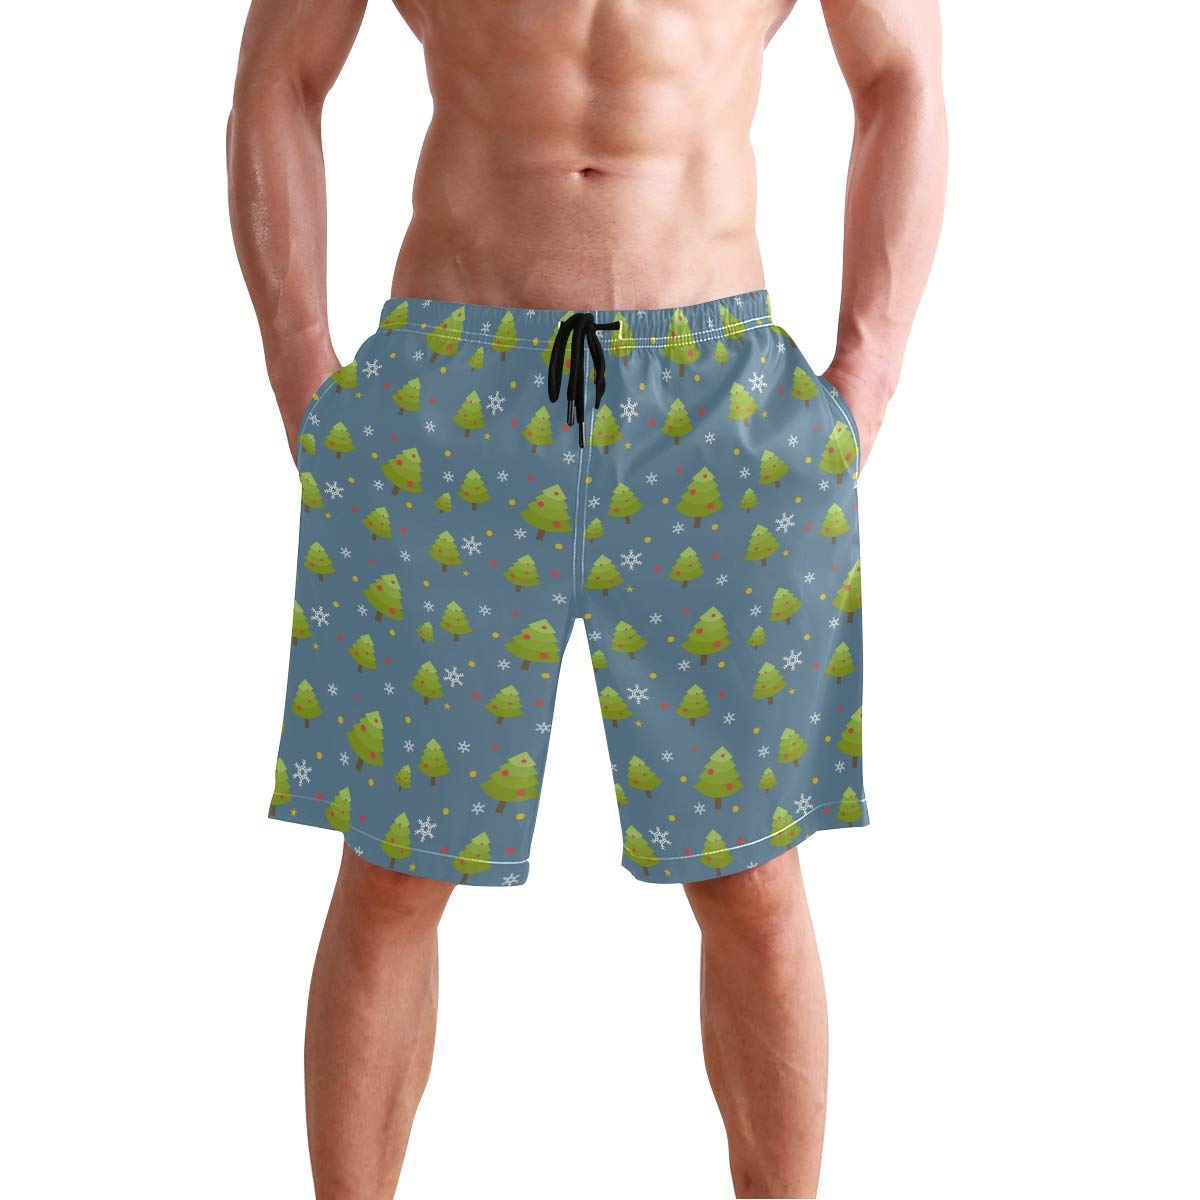 JECERY Mens Swim Trunks Merry Christmas Trees Pattern Quick Dry Board Shorts with Drawstring and Pockets